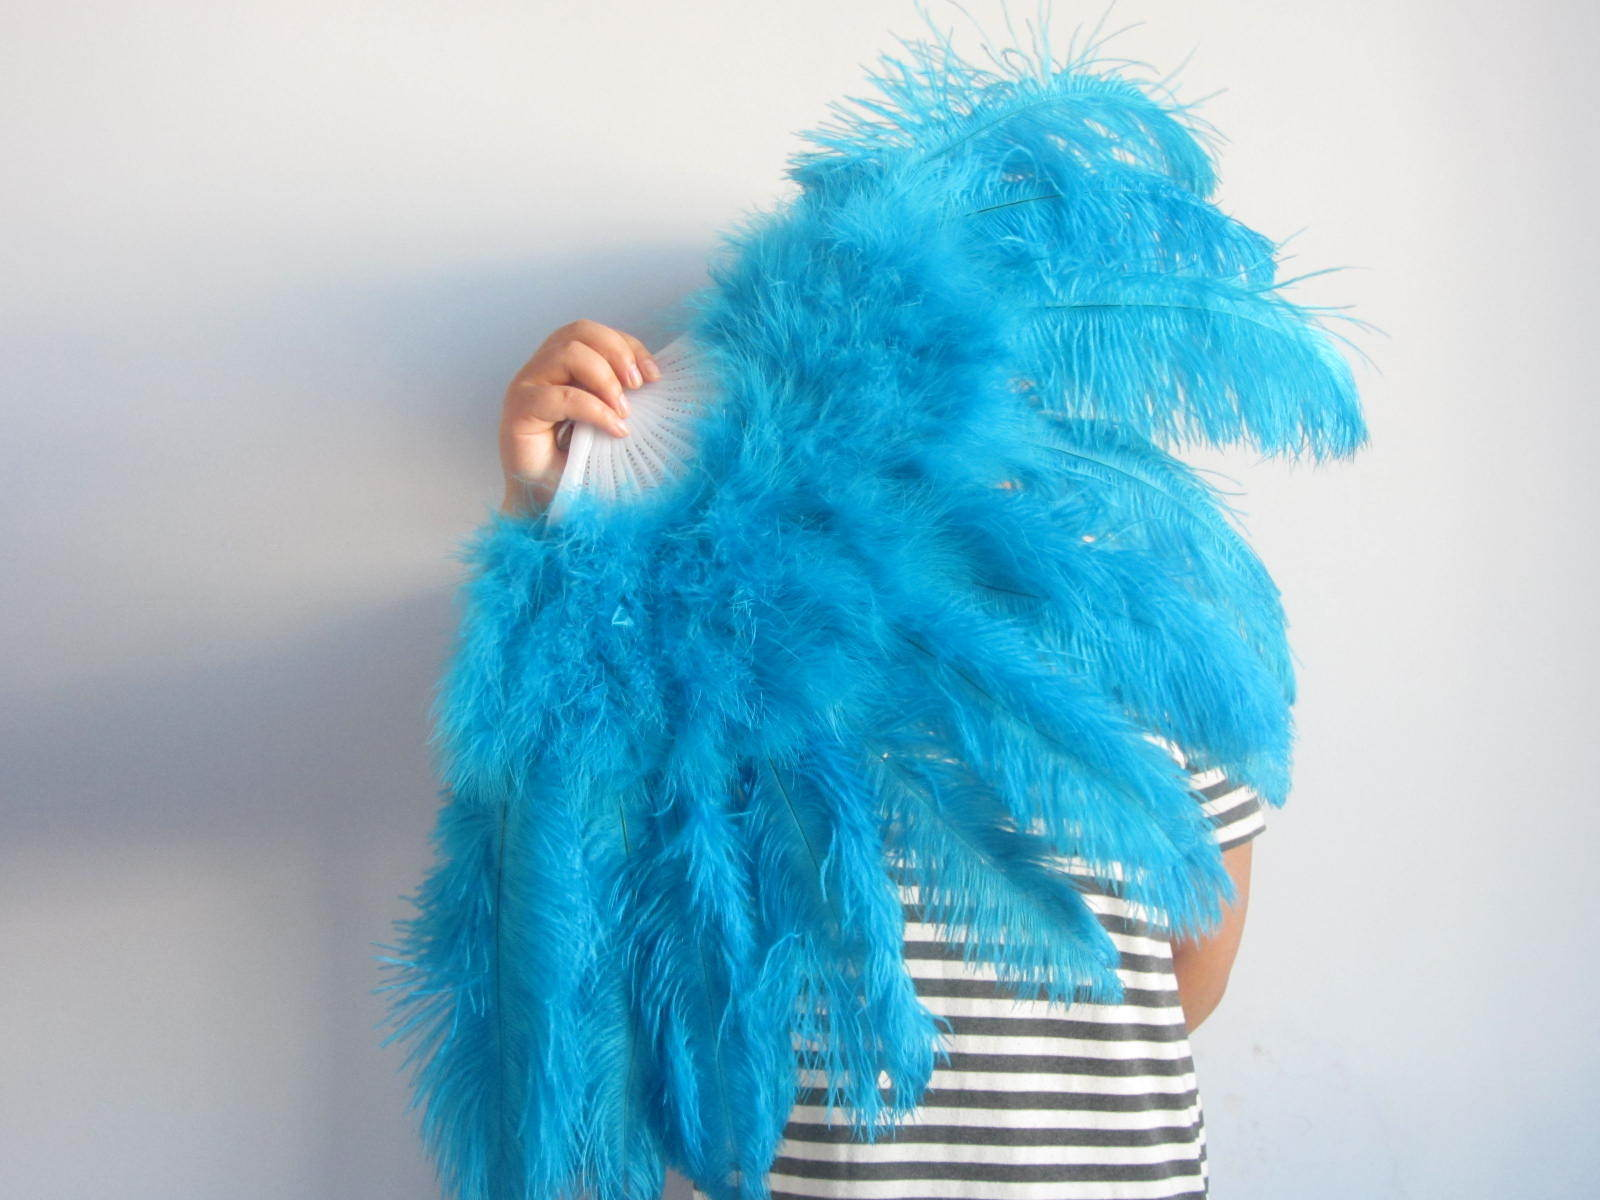 delivery by 30th Oct,2pieces turquoise 36*18inch Large Burlesque Feather Fan Turkey Marabou Feather Fan